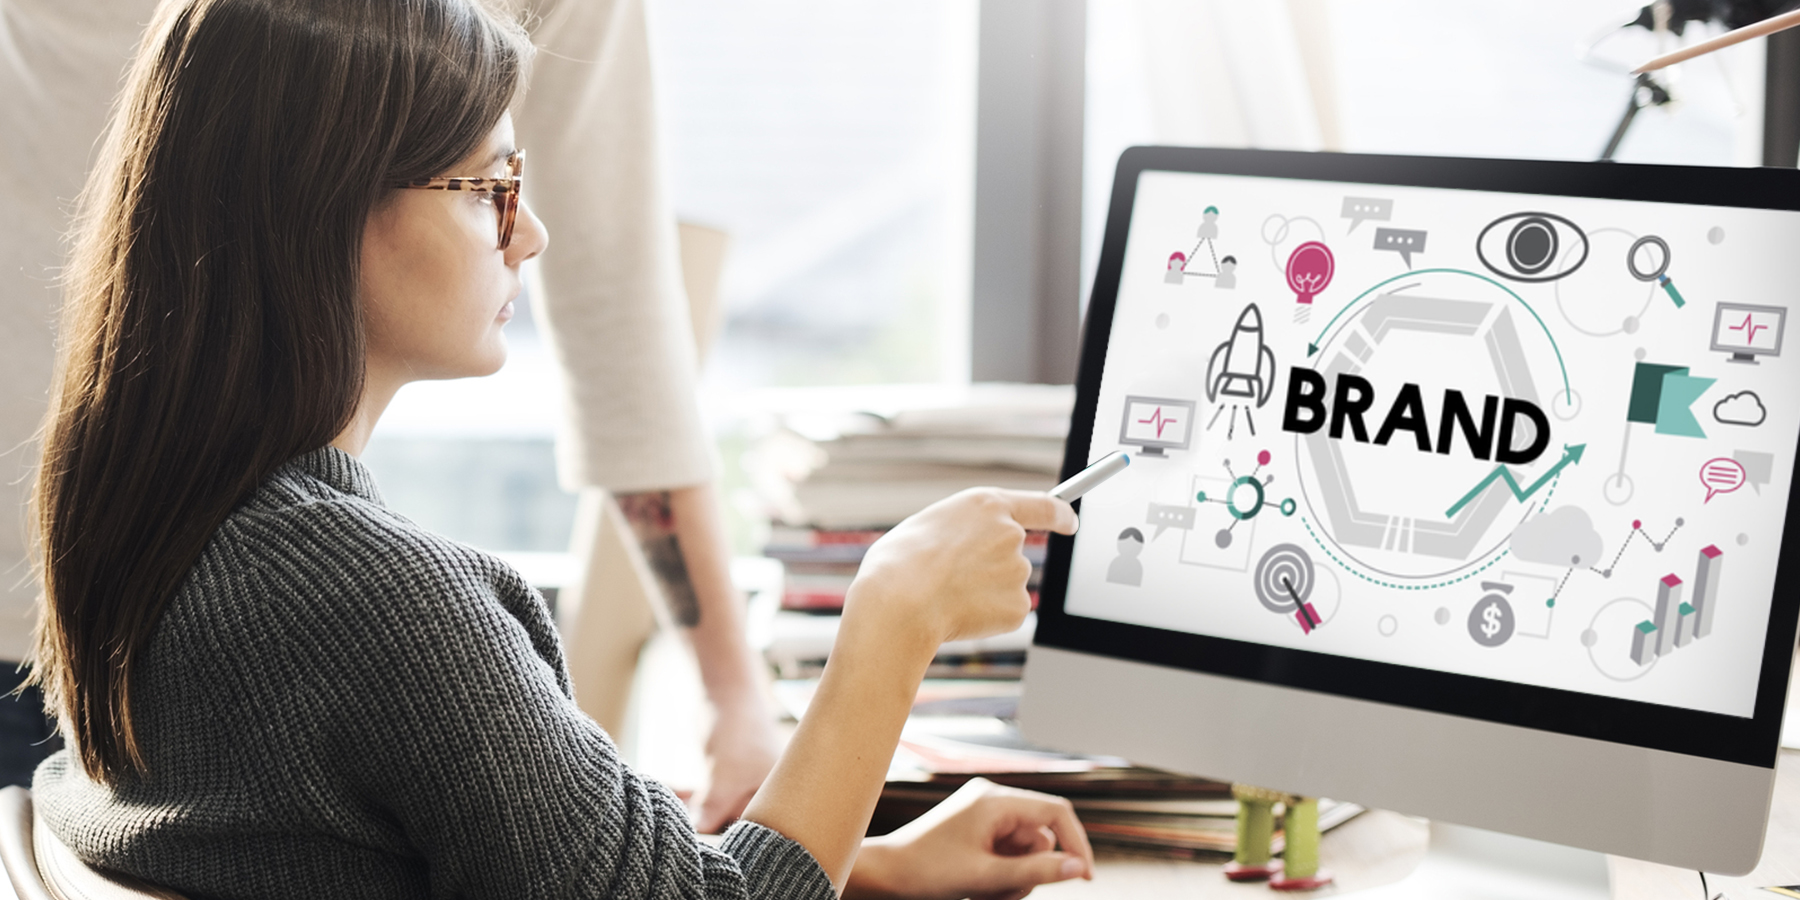 a3b2b8ce32609 Top 5 Benefits Of Online Branding For All Types Of Businesses | Web ...